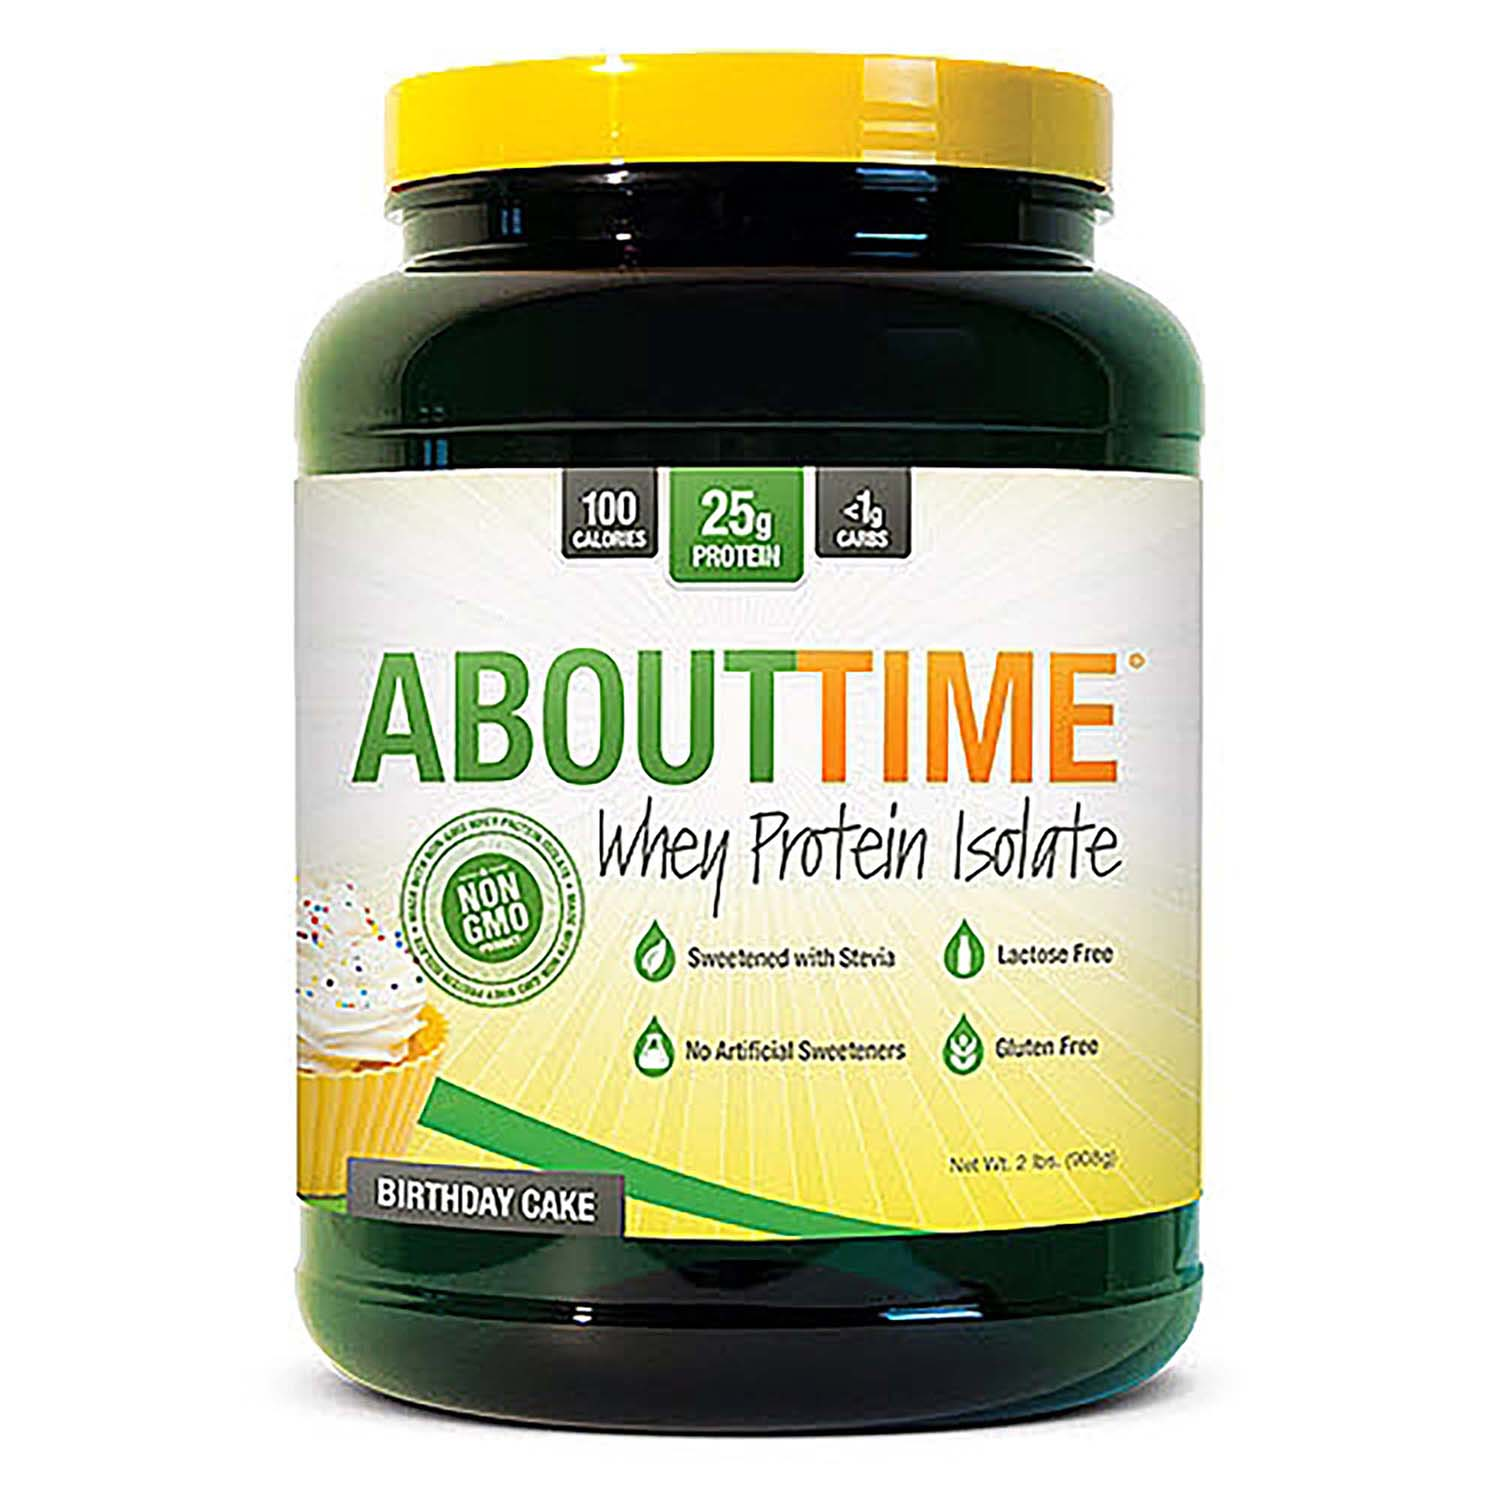 AboutTimeR Whey Protein Isolate